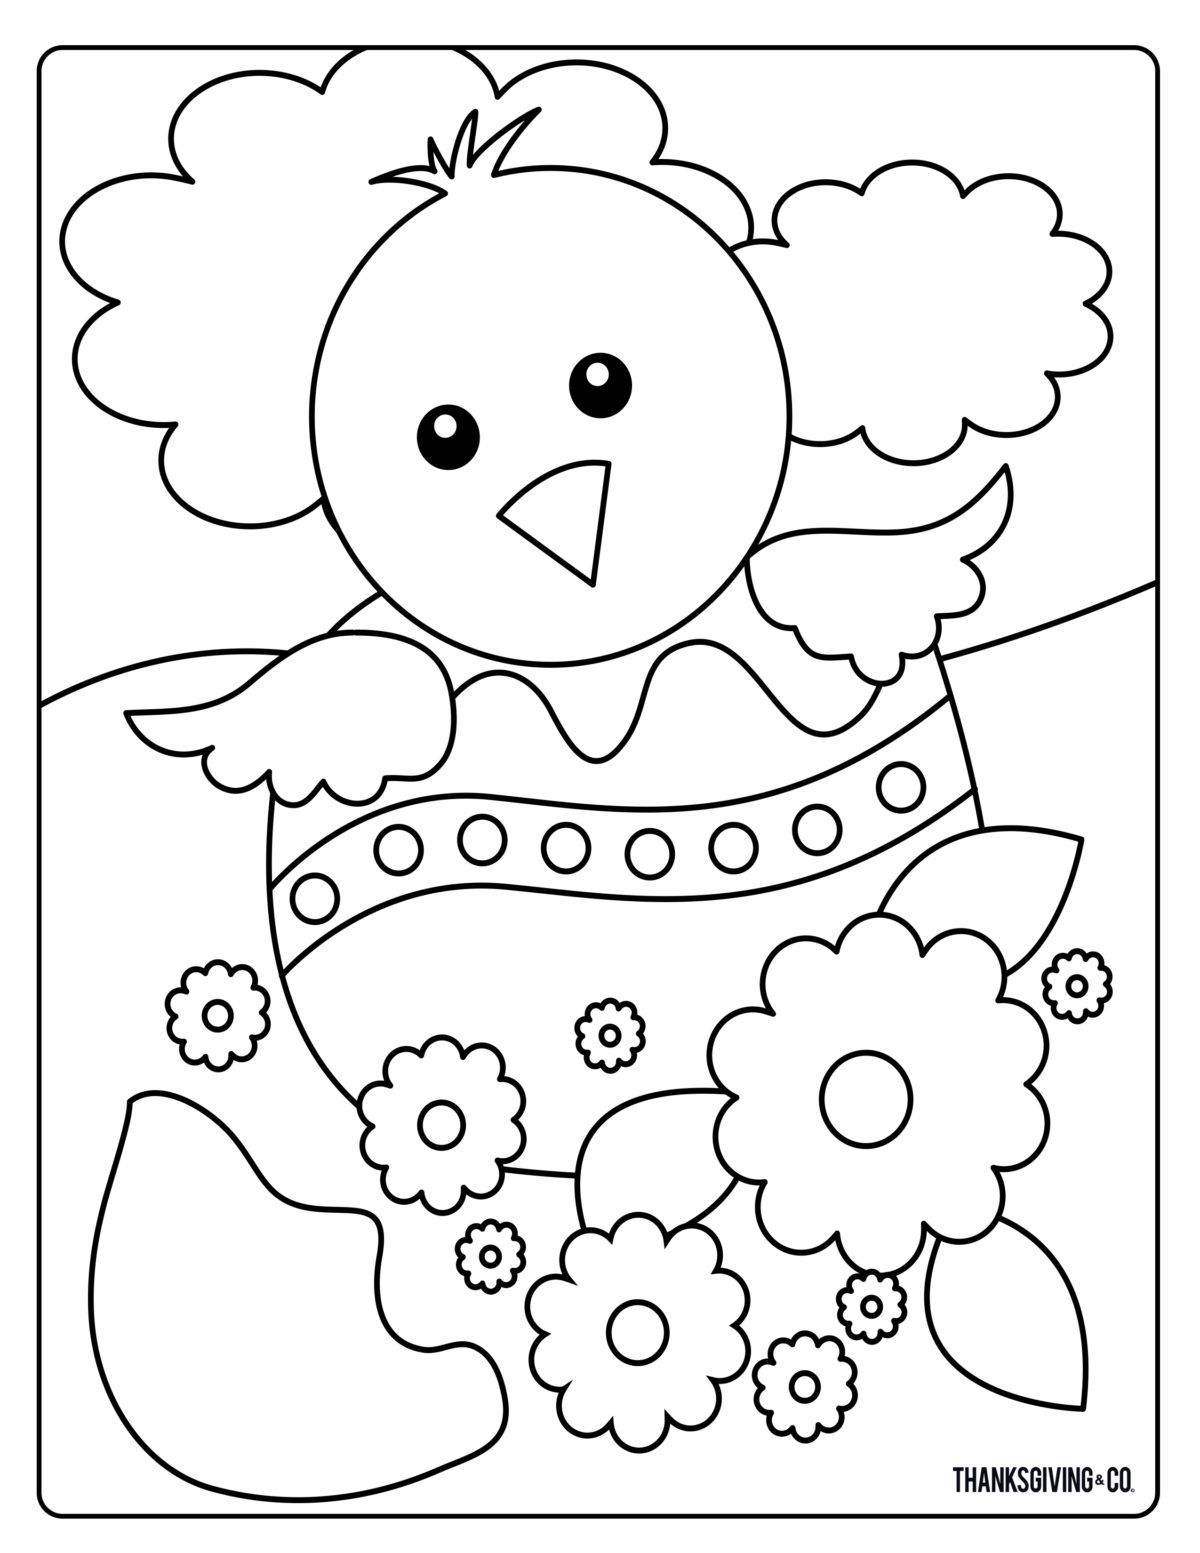 Sweet And Sunny Spring Easter Coloring Pages Easter Coloring Book Easter Coloring Pages Printable Unicorn Coloring Pages